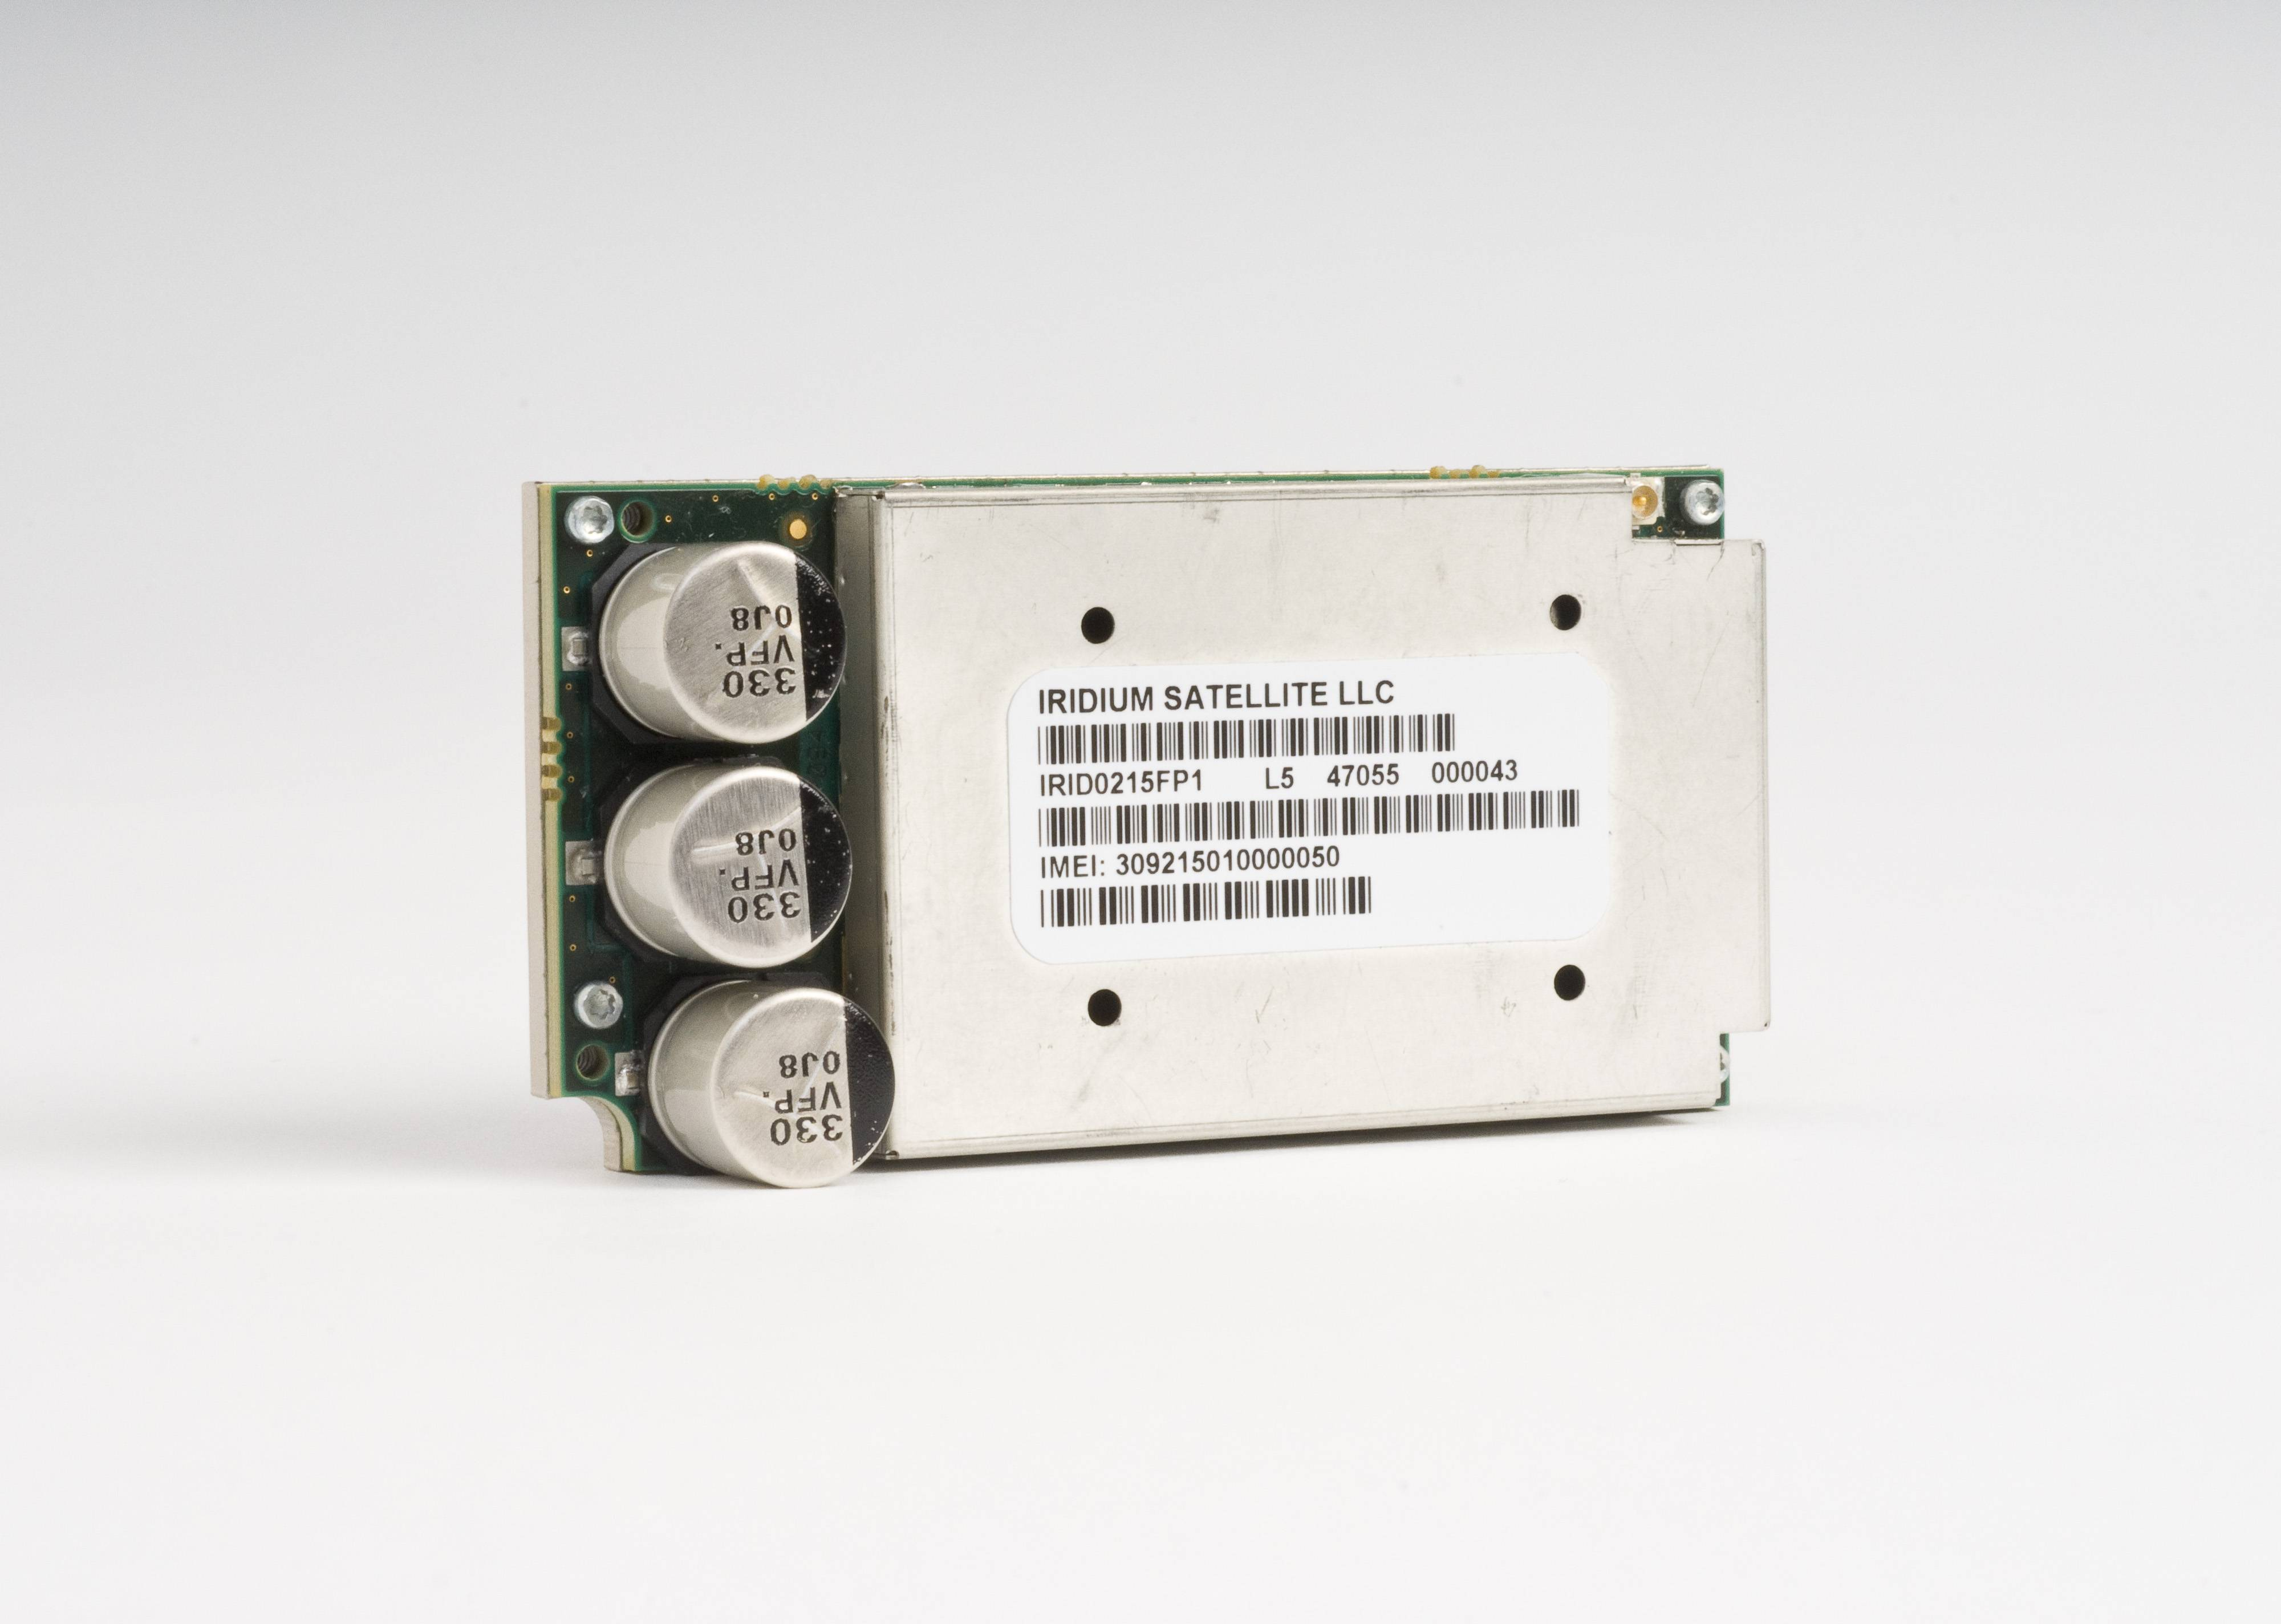 the Iridium Core 9523 transceiver.